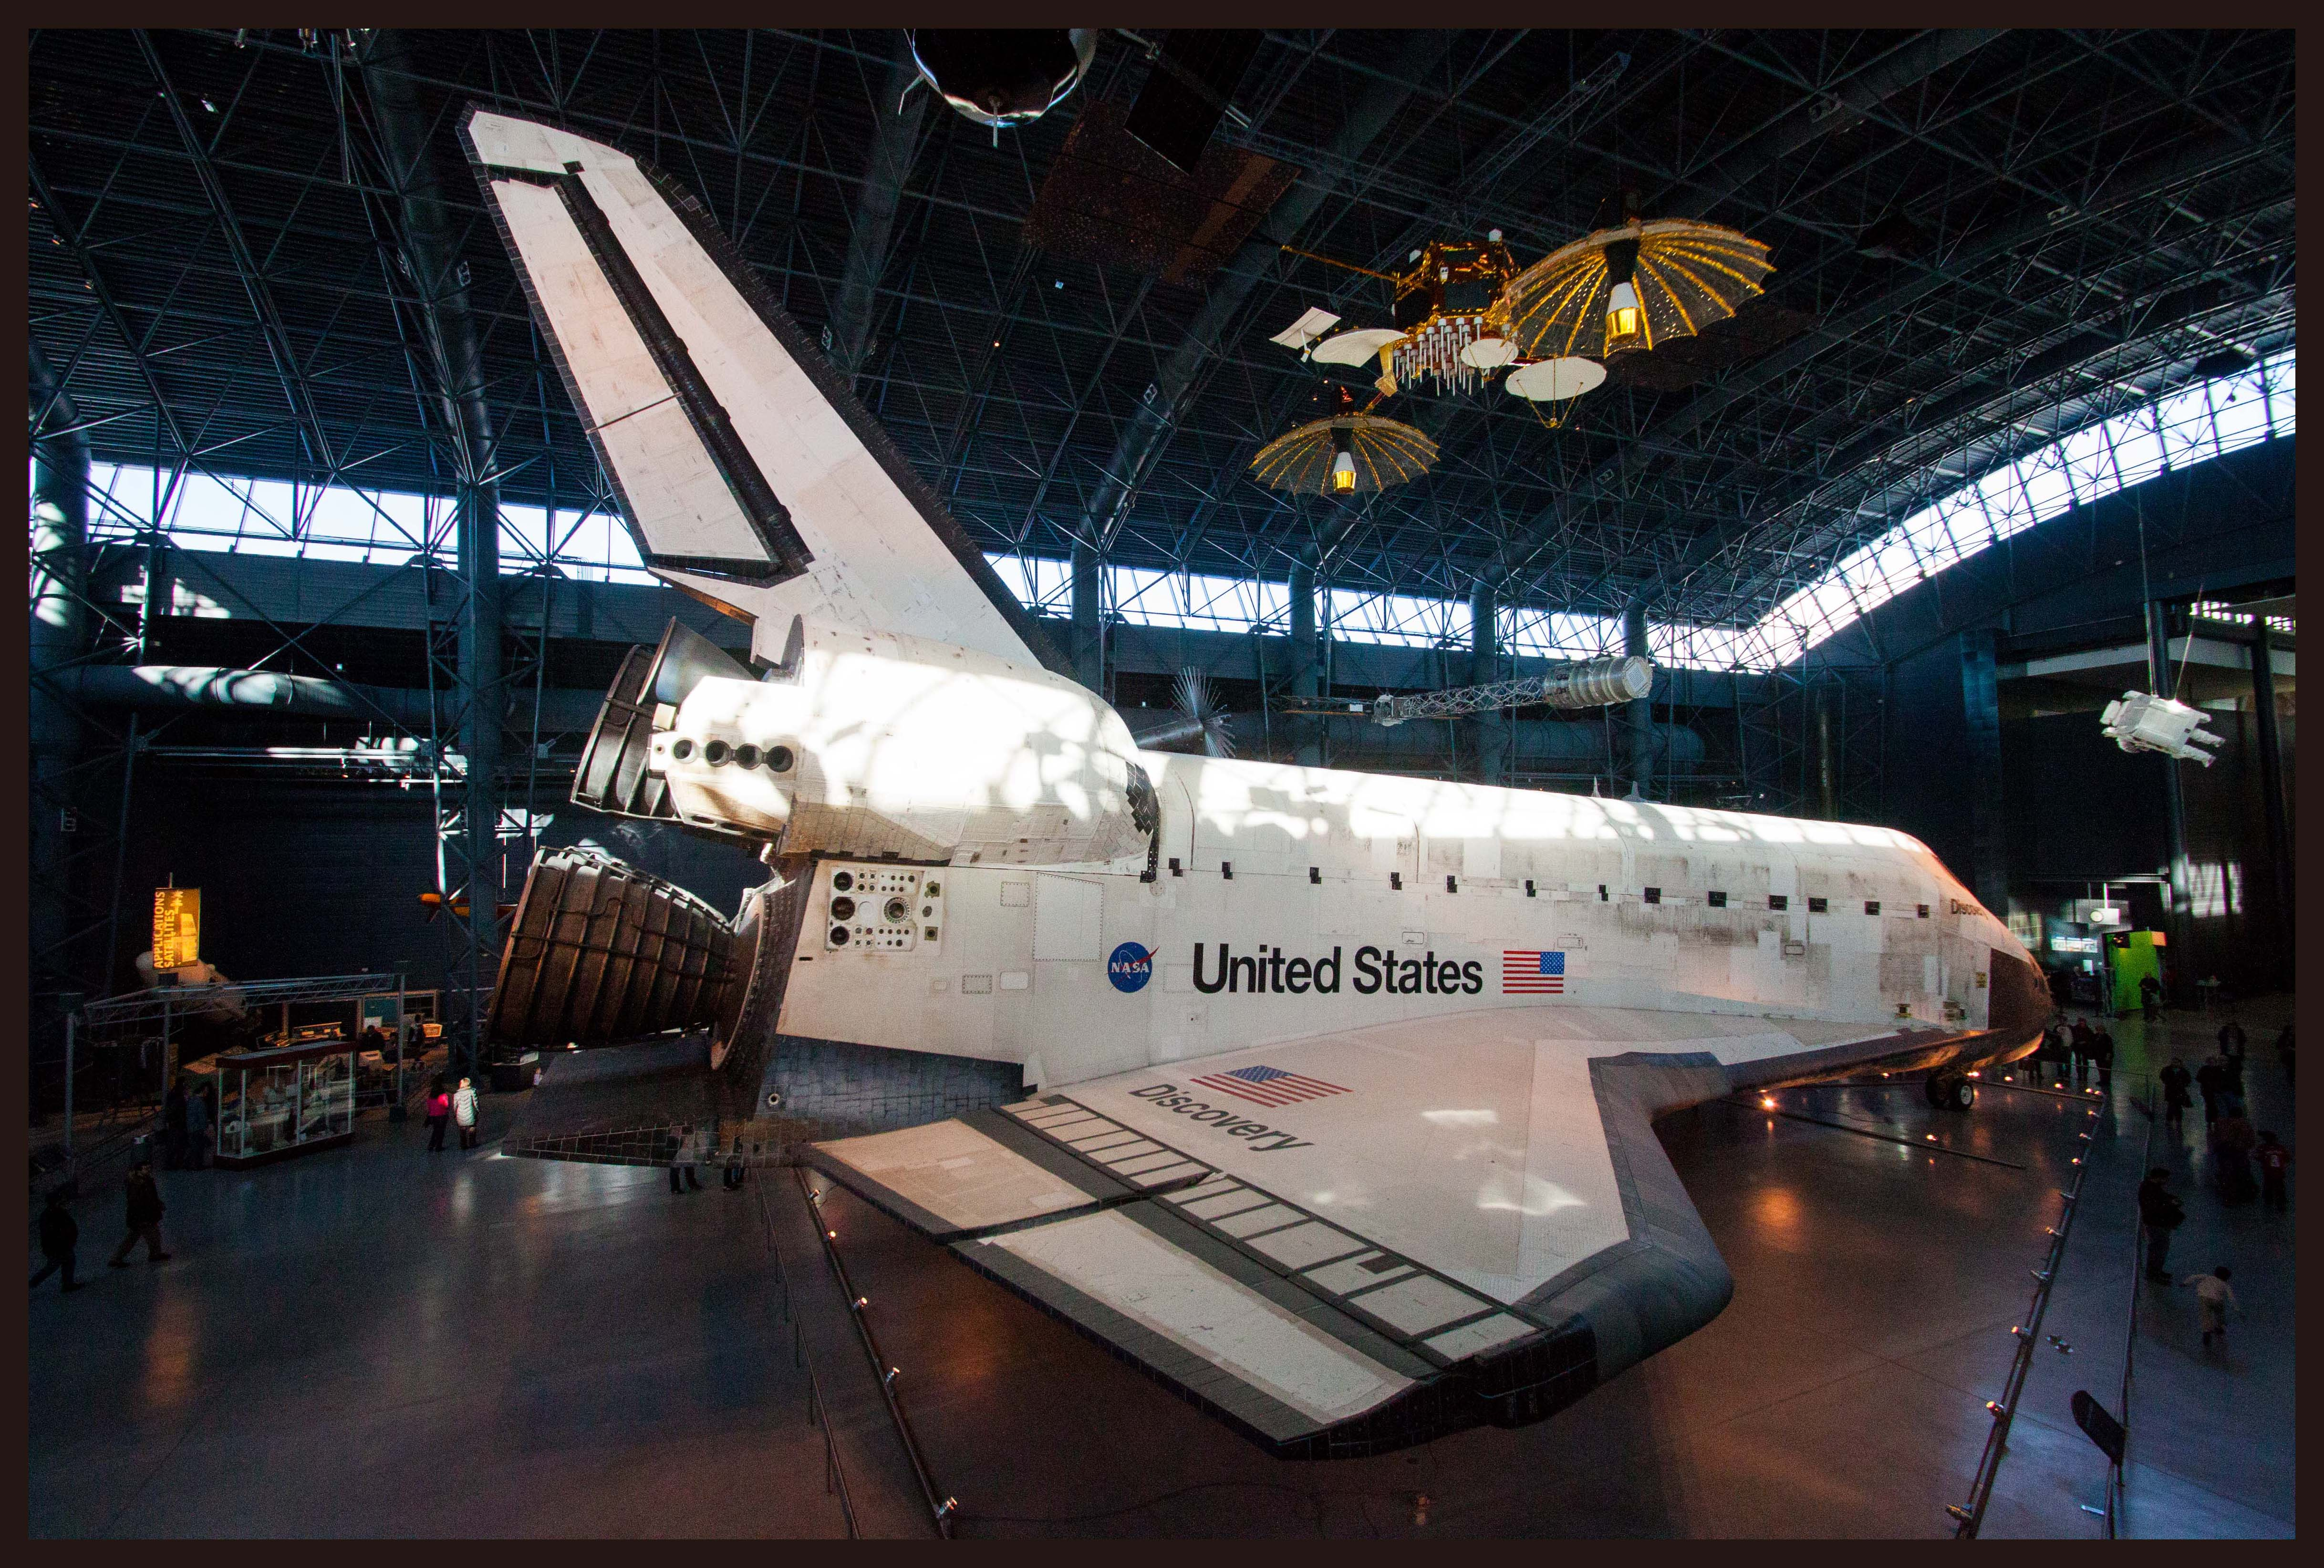 space shuttle discovery hazy - photo #19